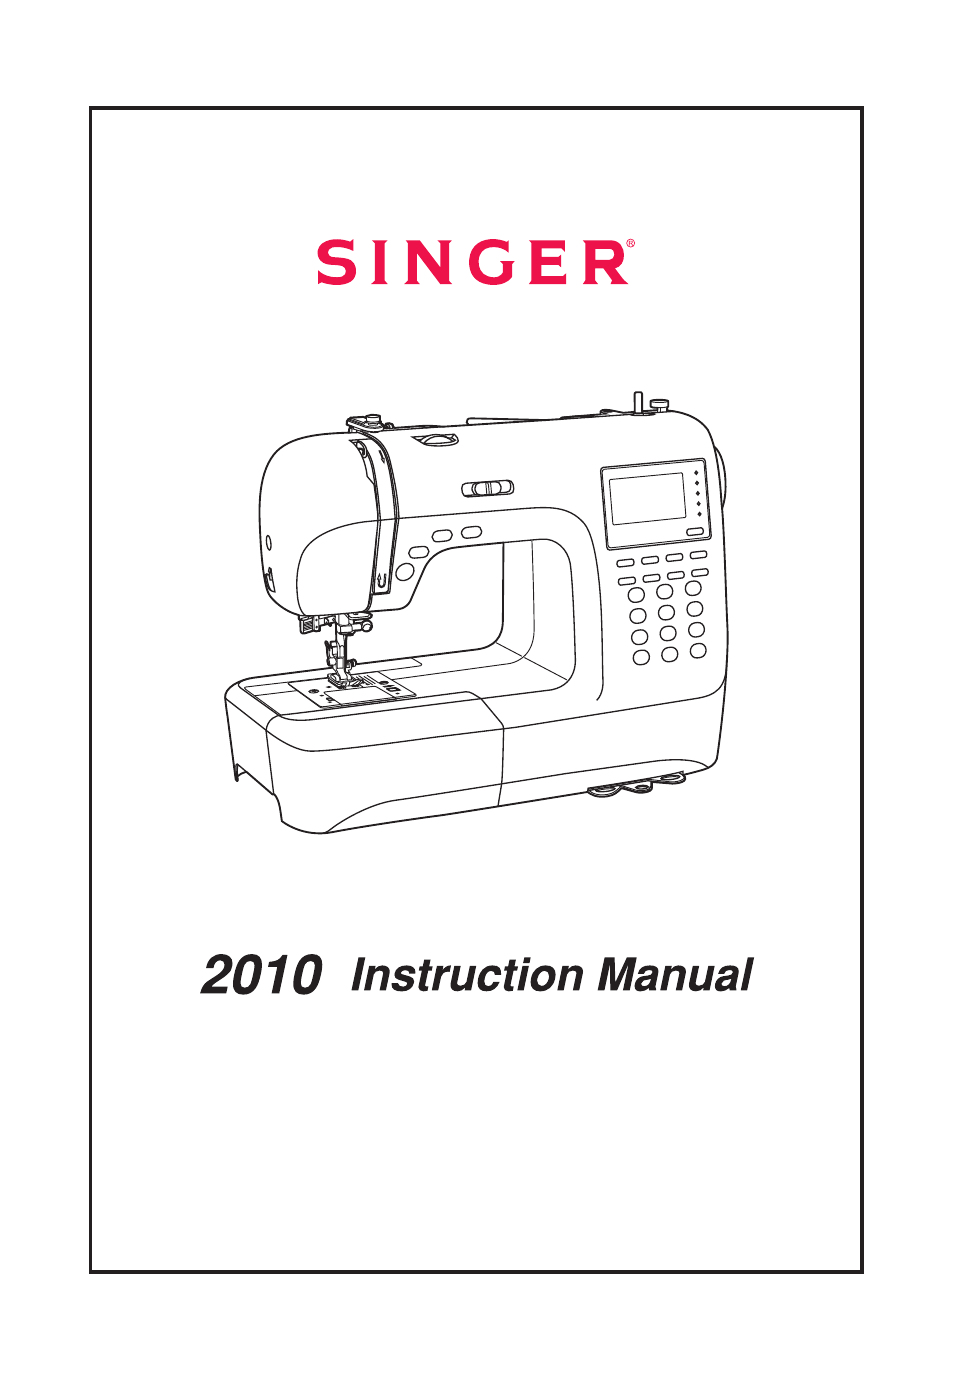 SINGER 2010 SUPERB Professional Instruction Manual User